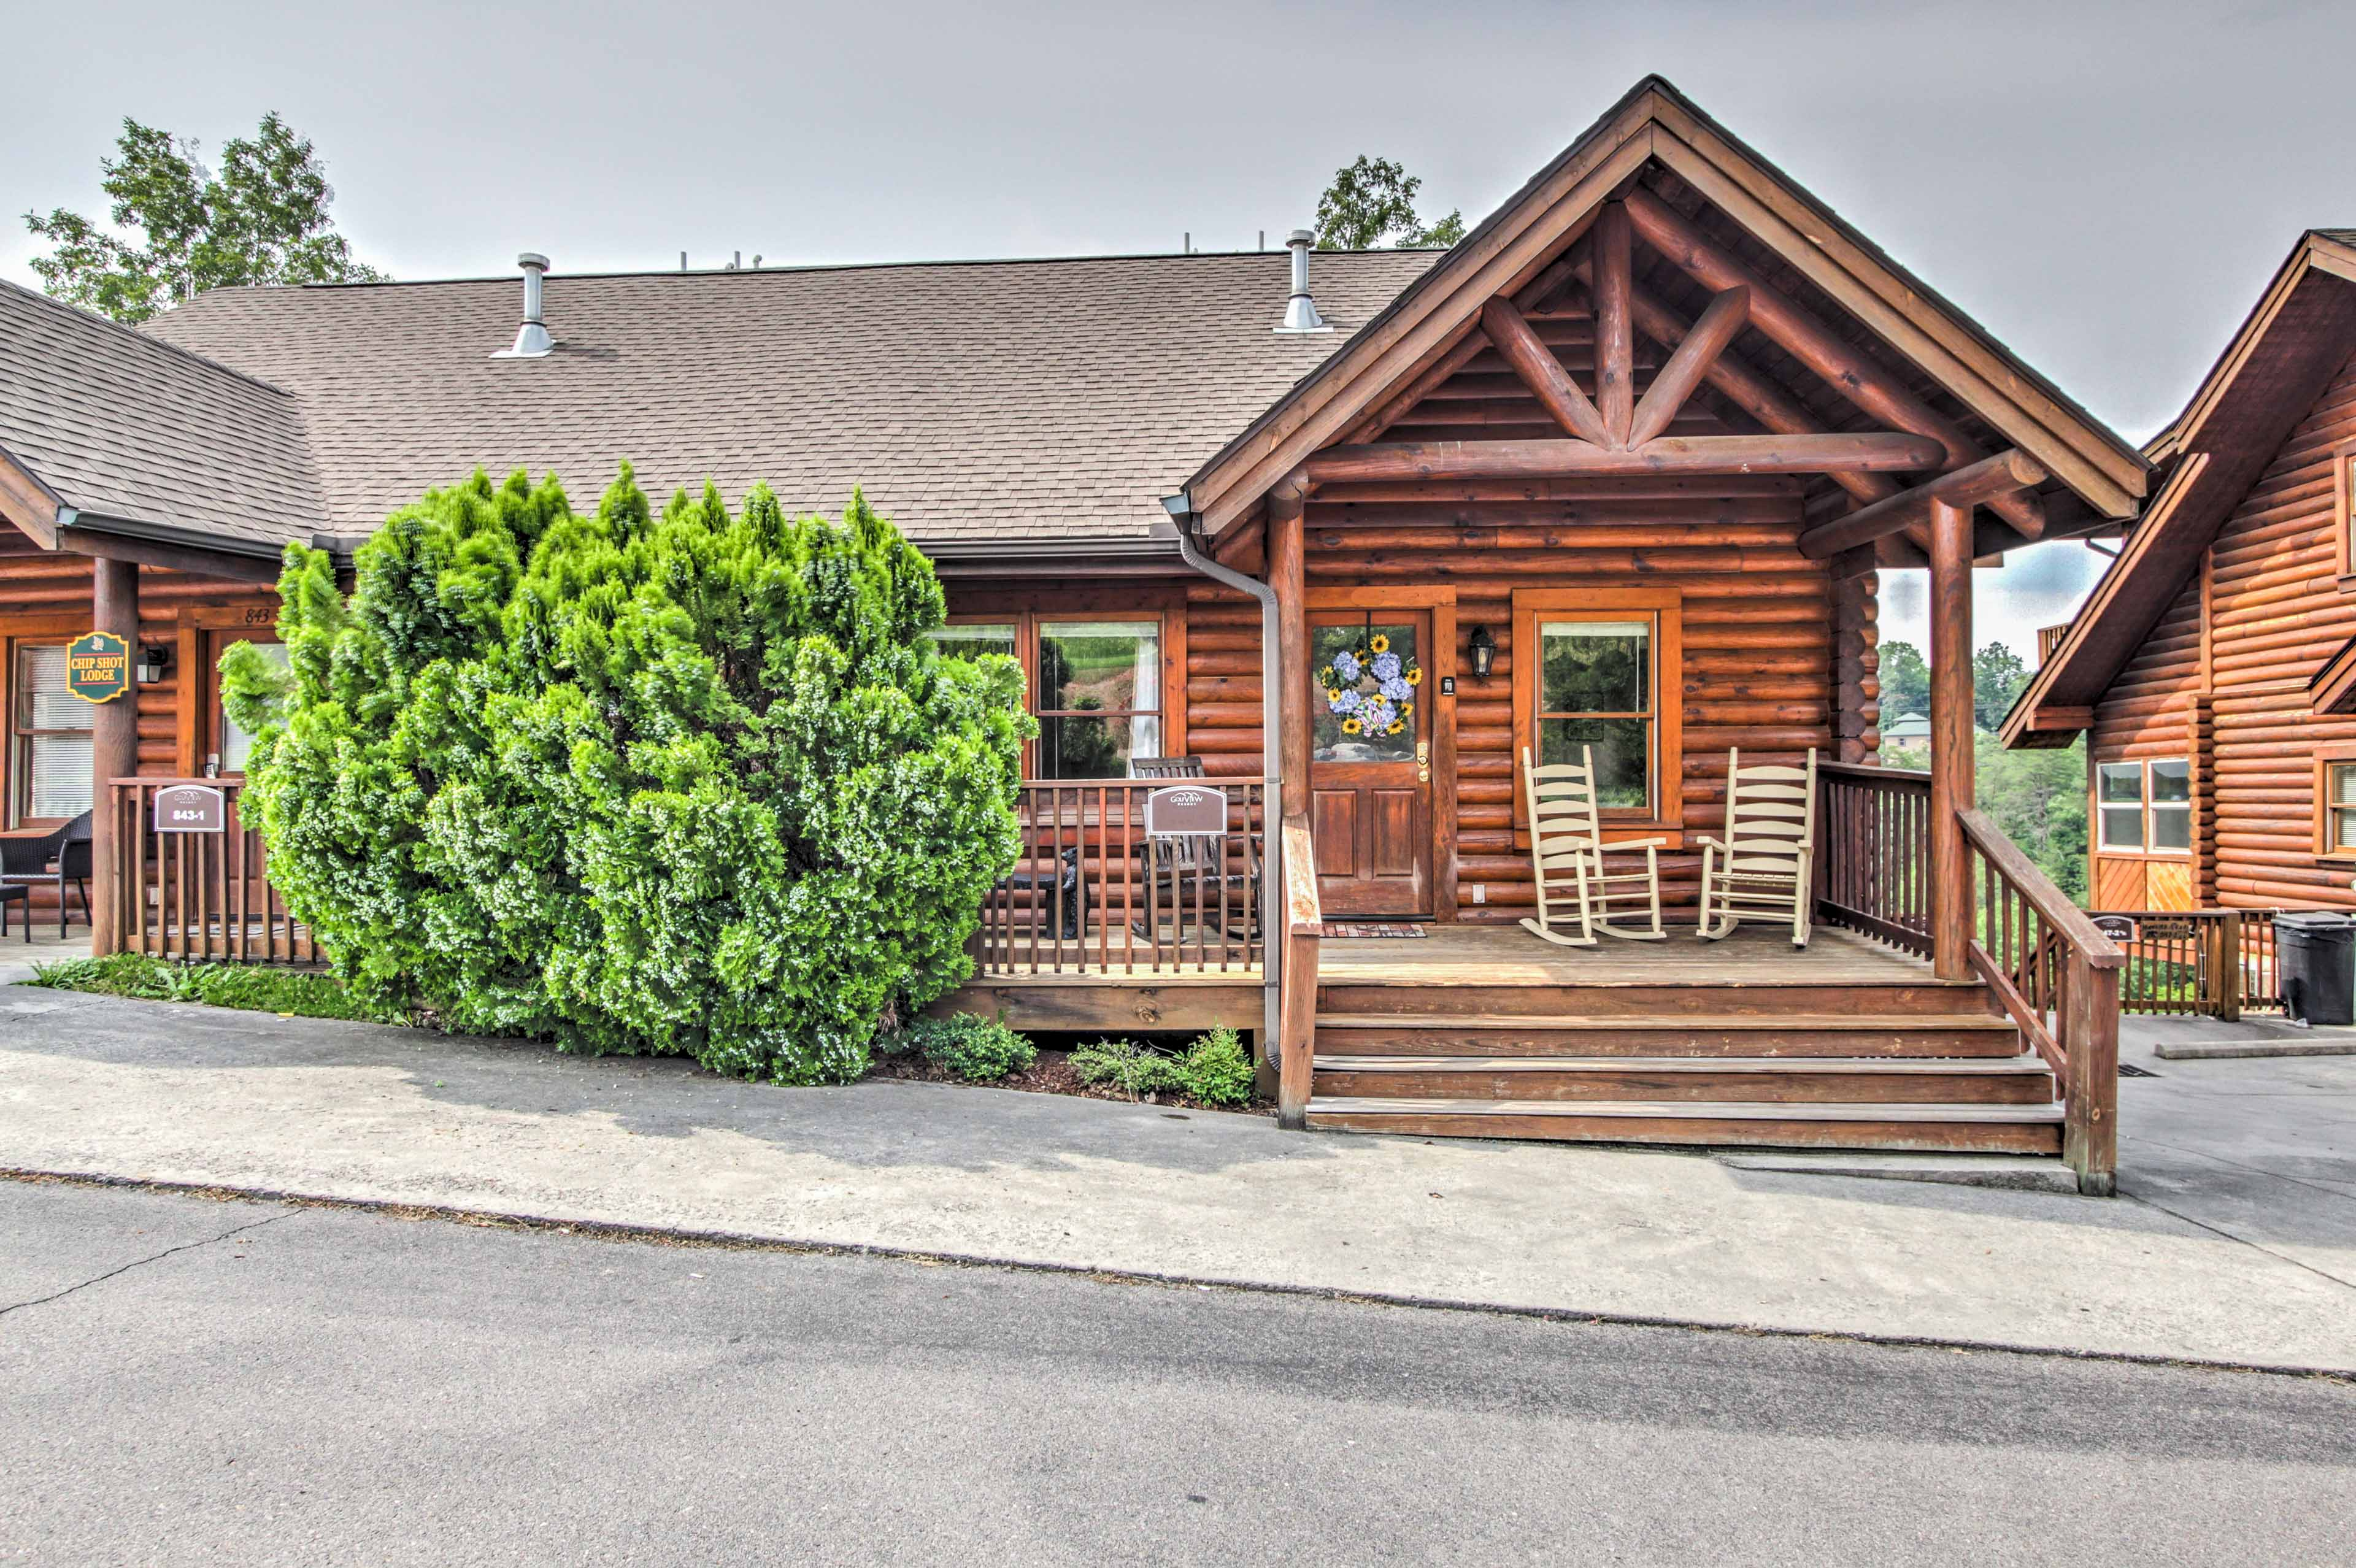 Pigeon Forge Vacation Rental | 3BR | 3BA | 2 Stories | 1,750 Sq Ft